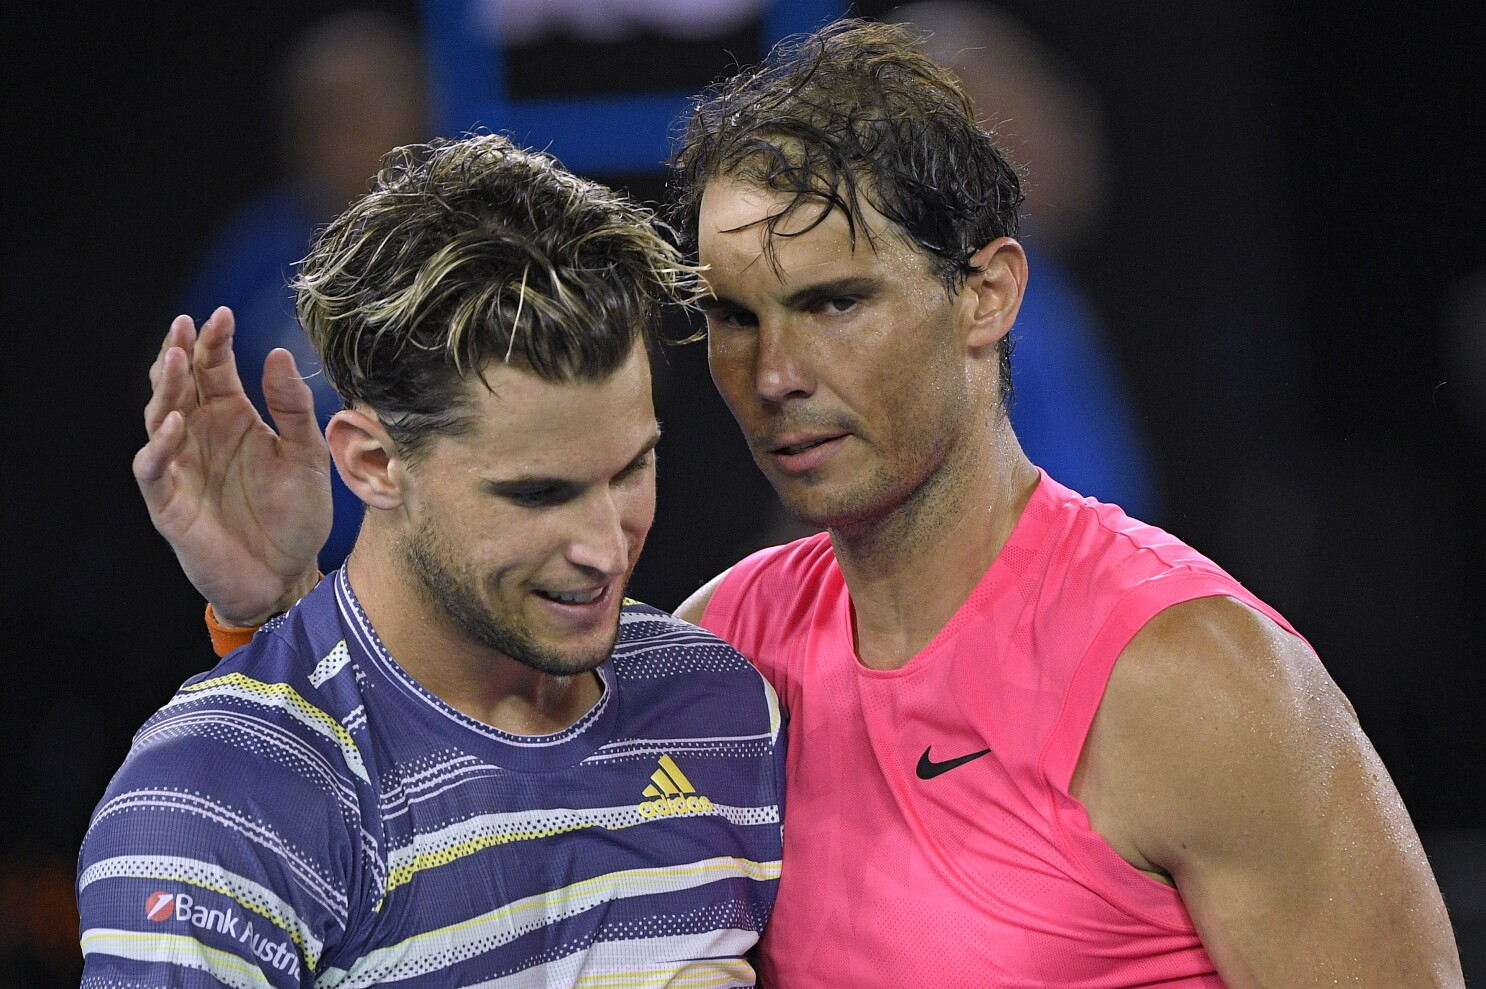 Rafael Nadal Upset By Dominic Thiem In Australian Open Quarterfinals Los Angeles Times